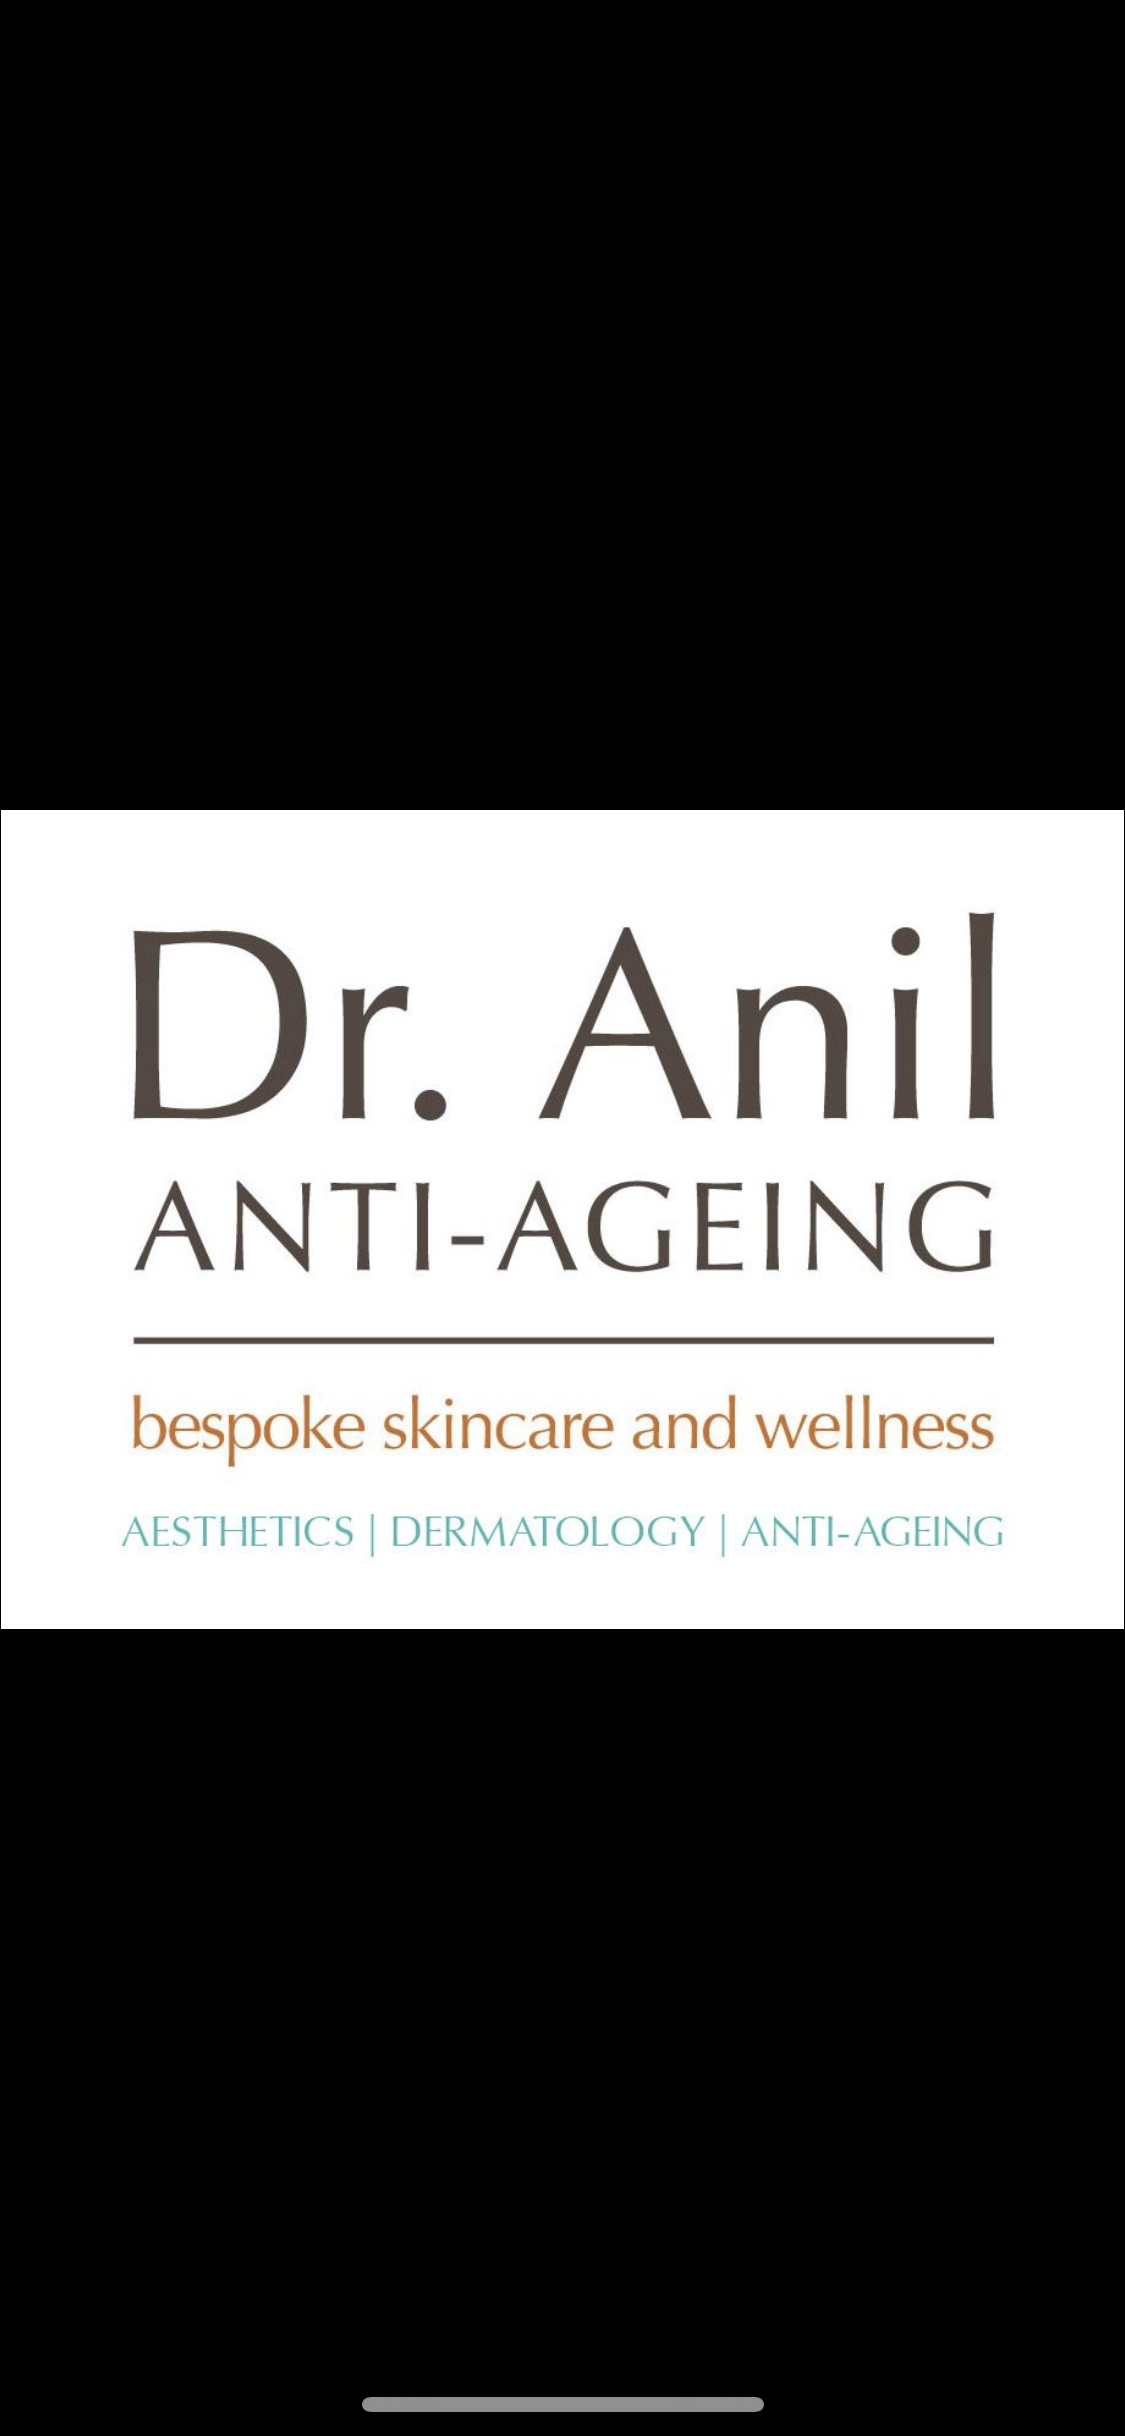 DR. ANIL ANTI - AGEING LIMITED